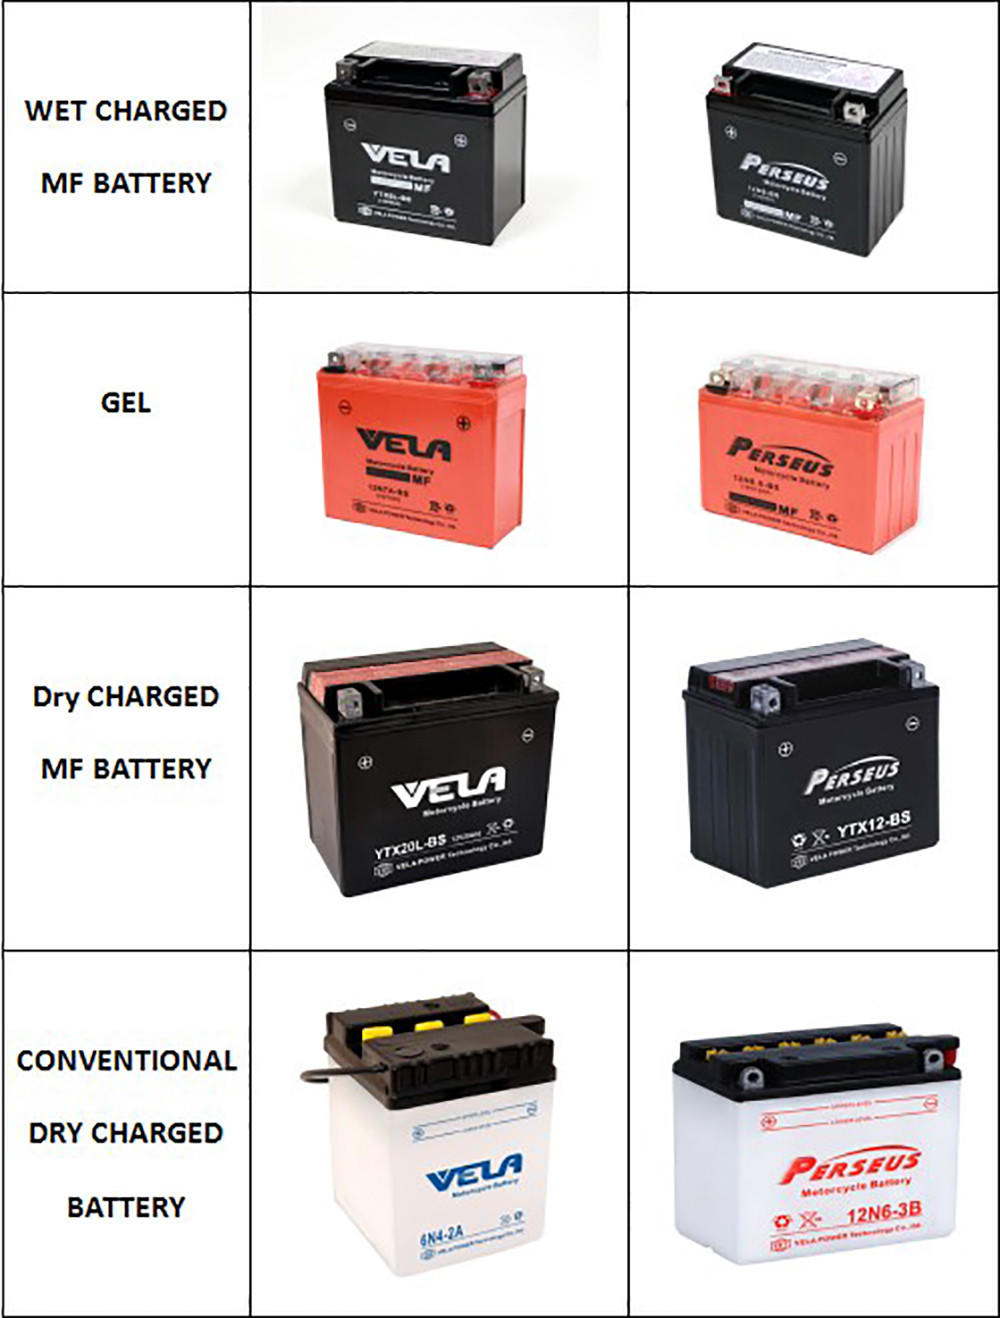 VELA longer cycle life maintenance free high performance motorcycle battery suitable for motorbikes-2